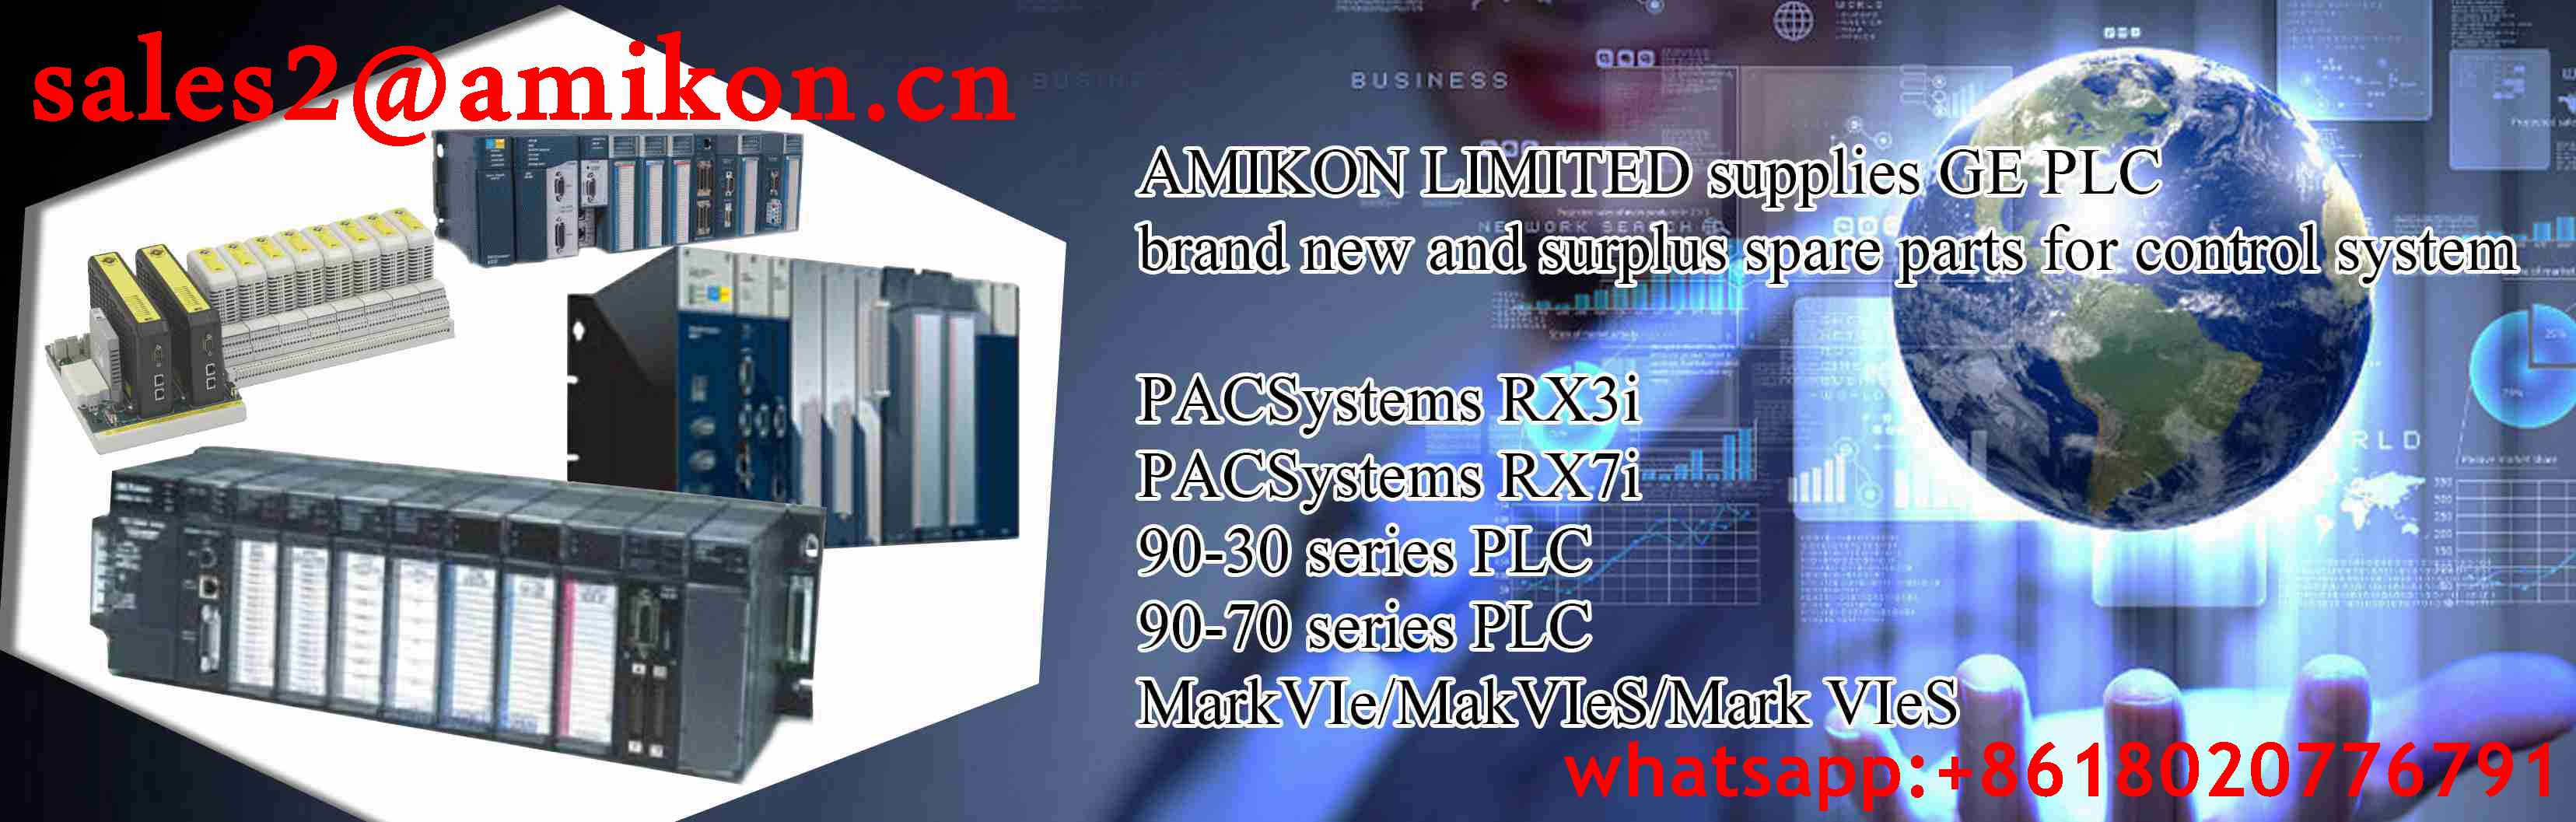 IC697PWR711 GE General Electric sales2@amikon.cn PLC DCS Industry Control System Module